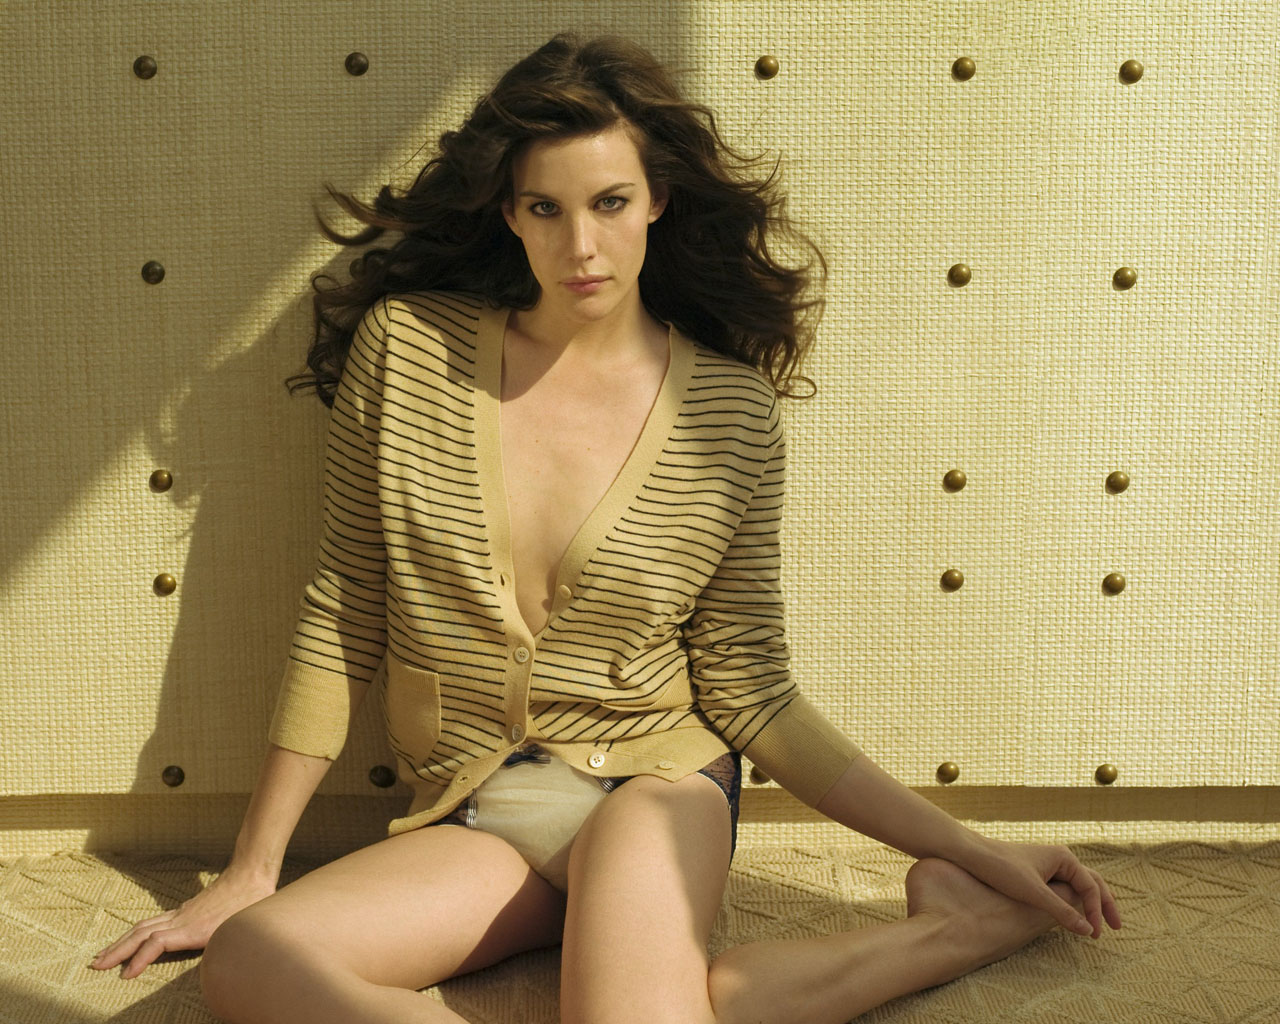 Liv Tyler Bikini http://telugu-wallpaper.blogspot.com/2011/07/liv-tyler-pictures-photos-images-hot.html